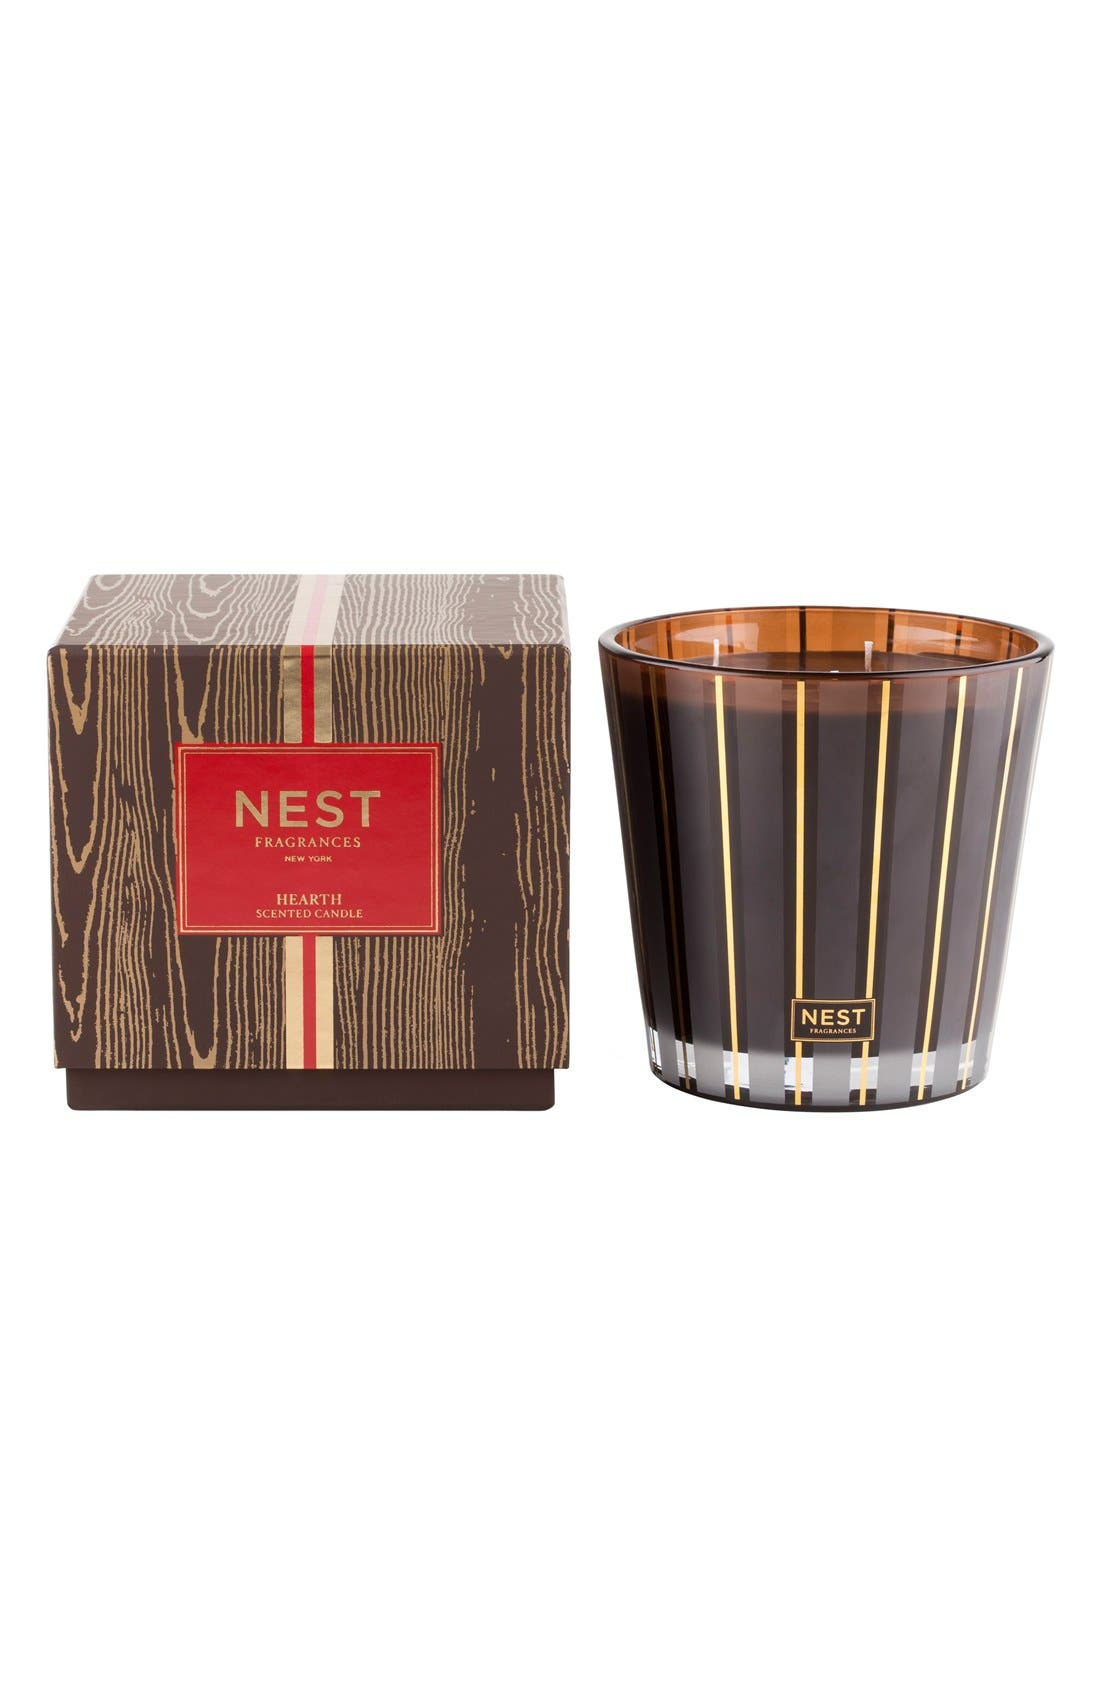 NEST Fragrances Hearth Scented Three-Wick Candle